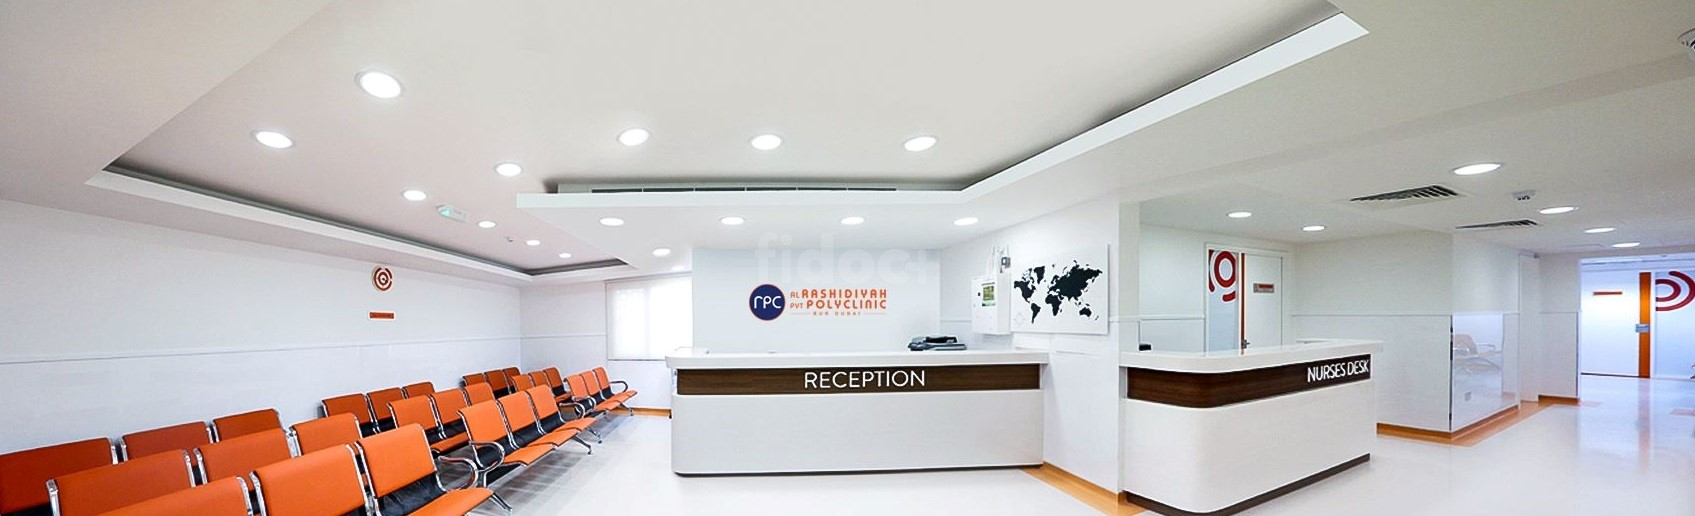 Al Rashidiyah Private Polyclinic, Dubai